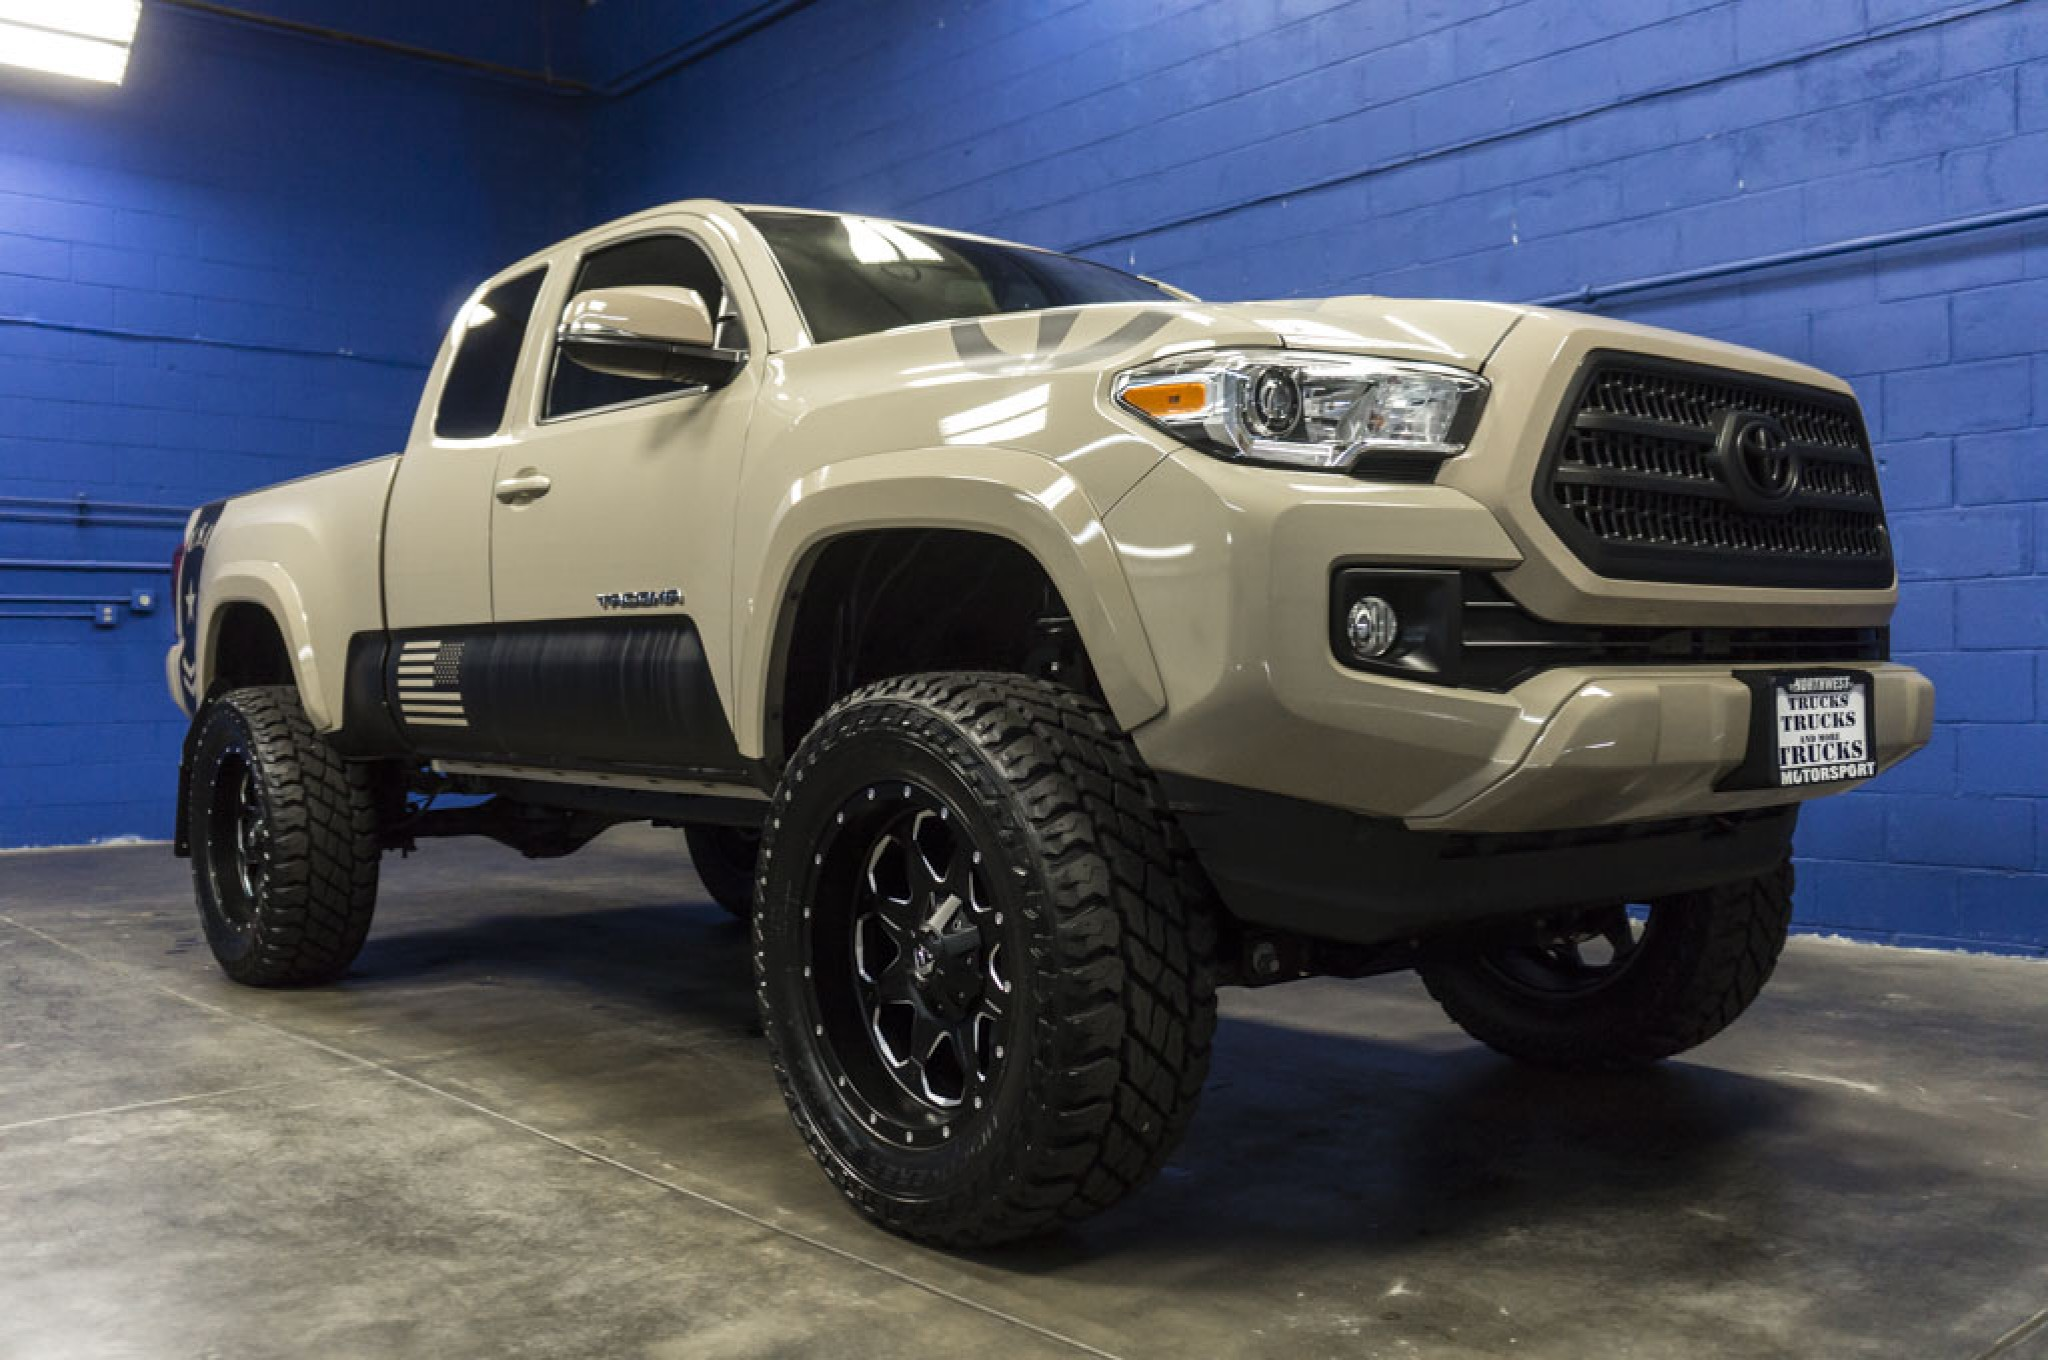 used lifted 2016 toyota tacoma 4x4 truck for sale 31980. Black Bedroom Furniture Sets. Home Design Ideas